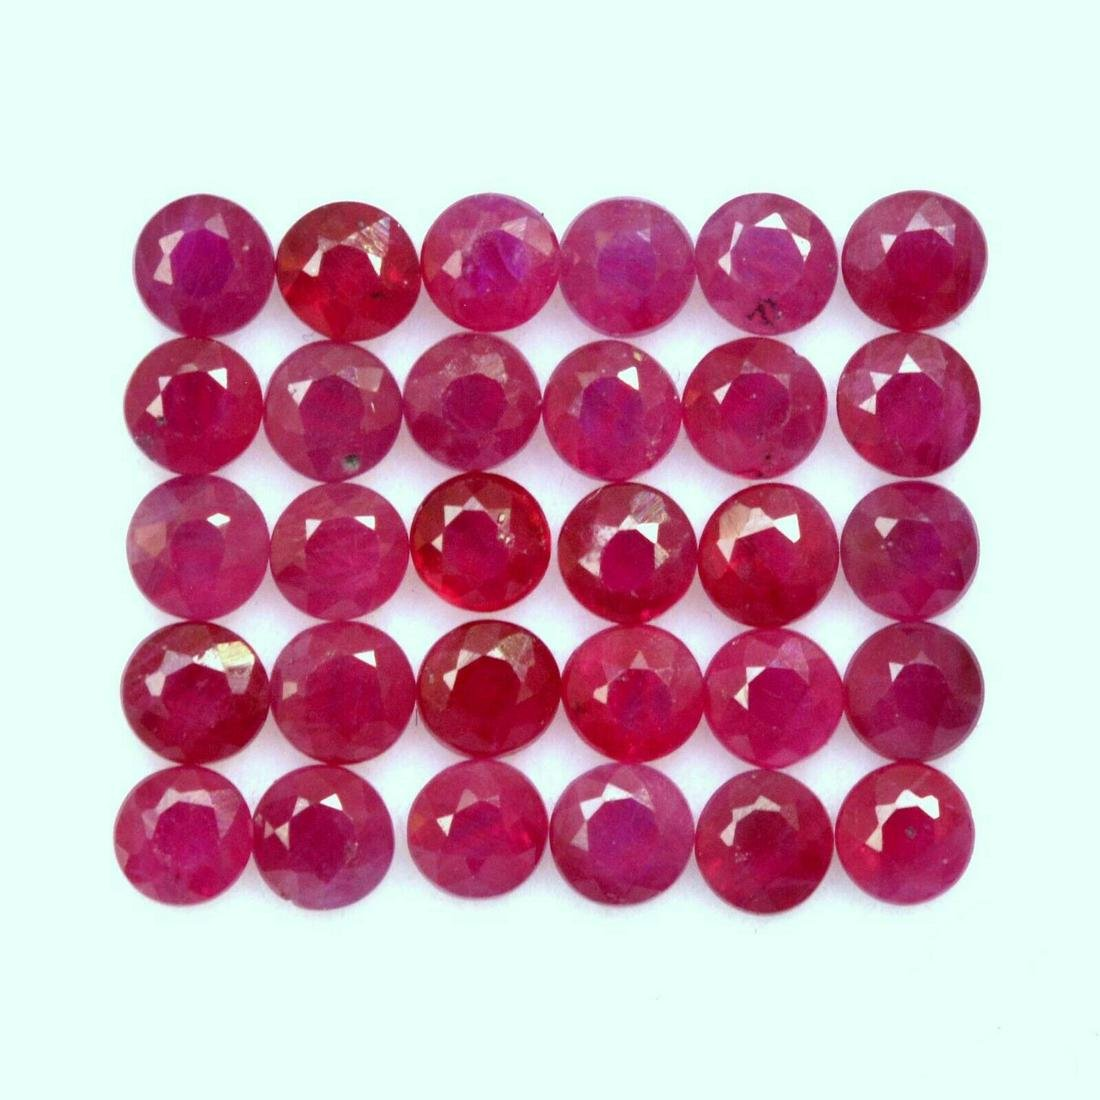 Natural Red Ruby 3.5 MM Round Cut Loose Gemstone Lot